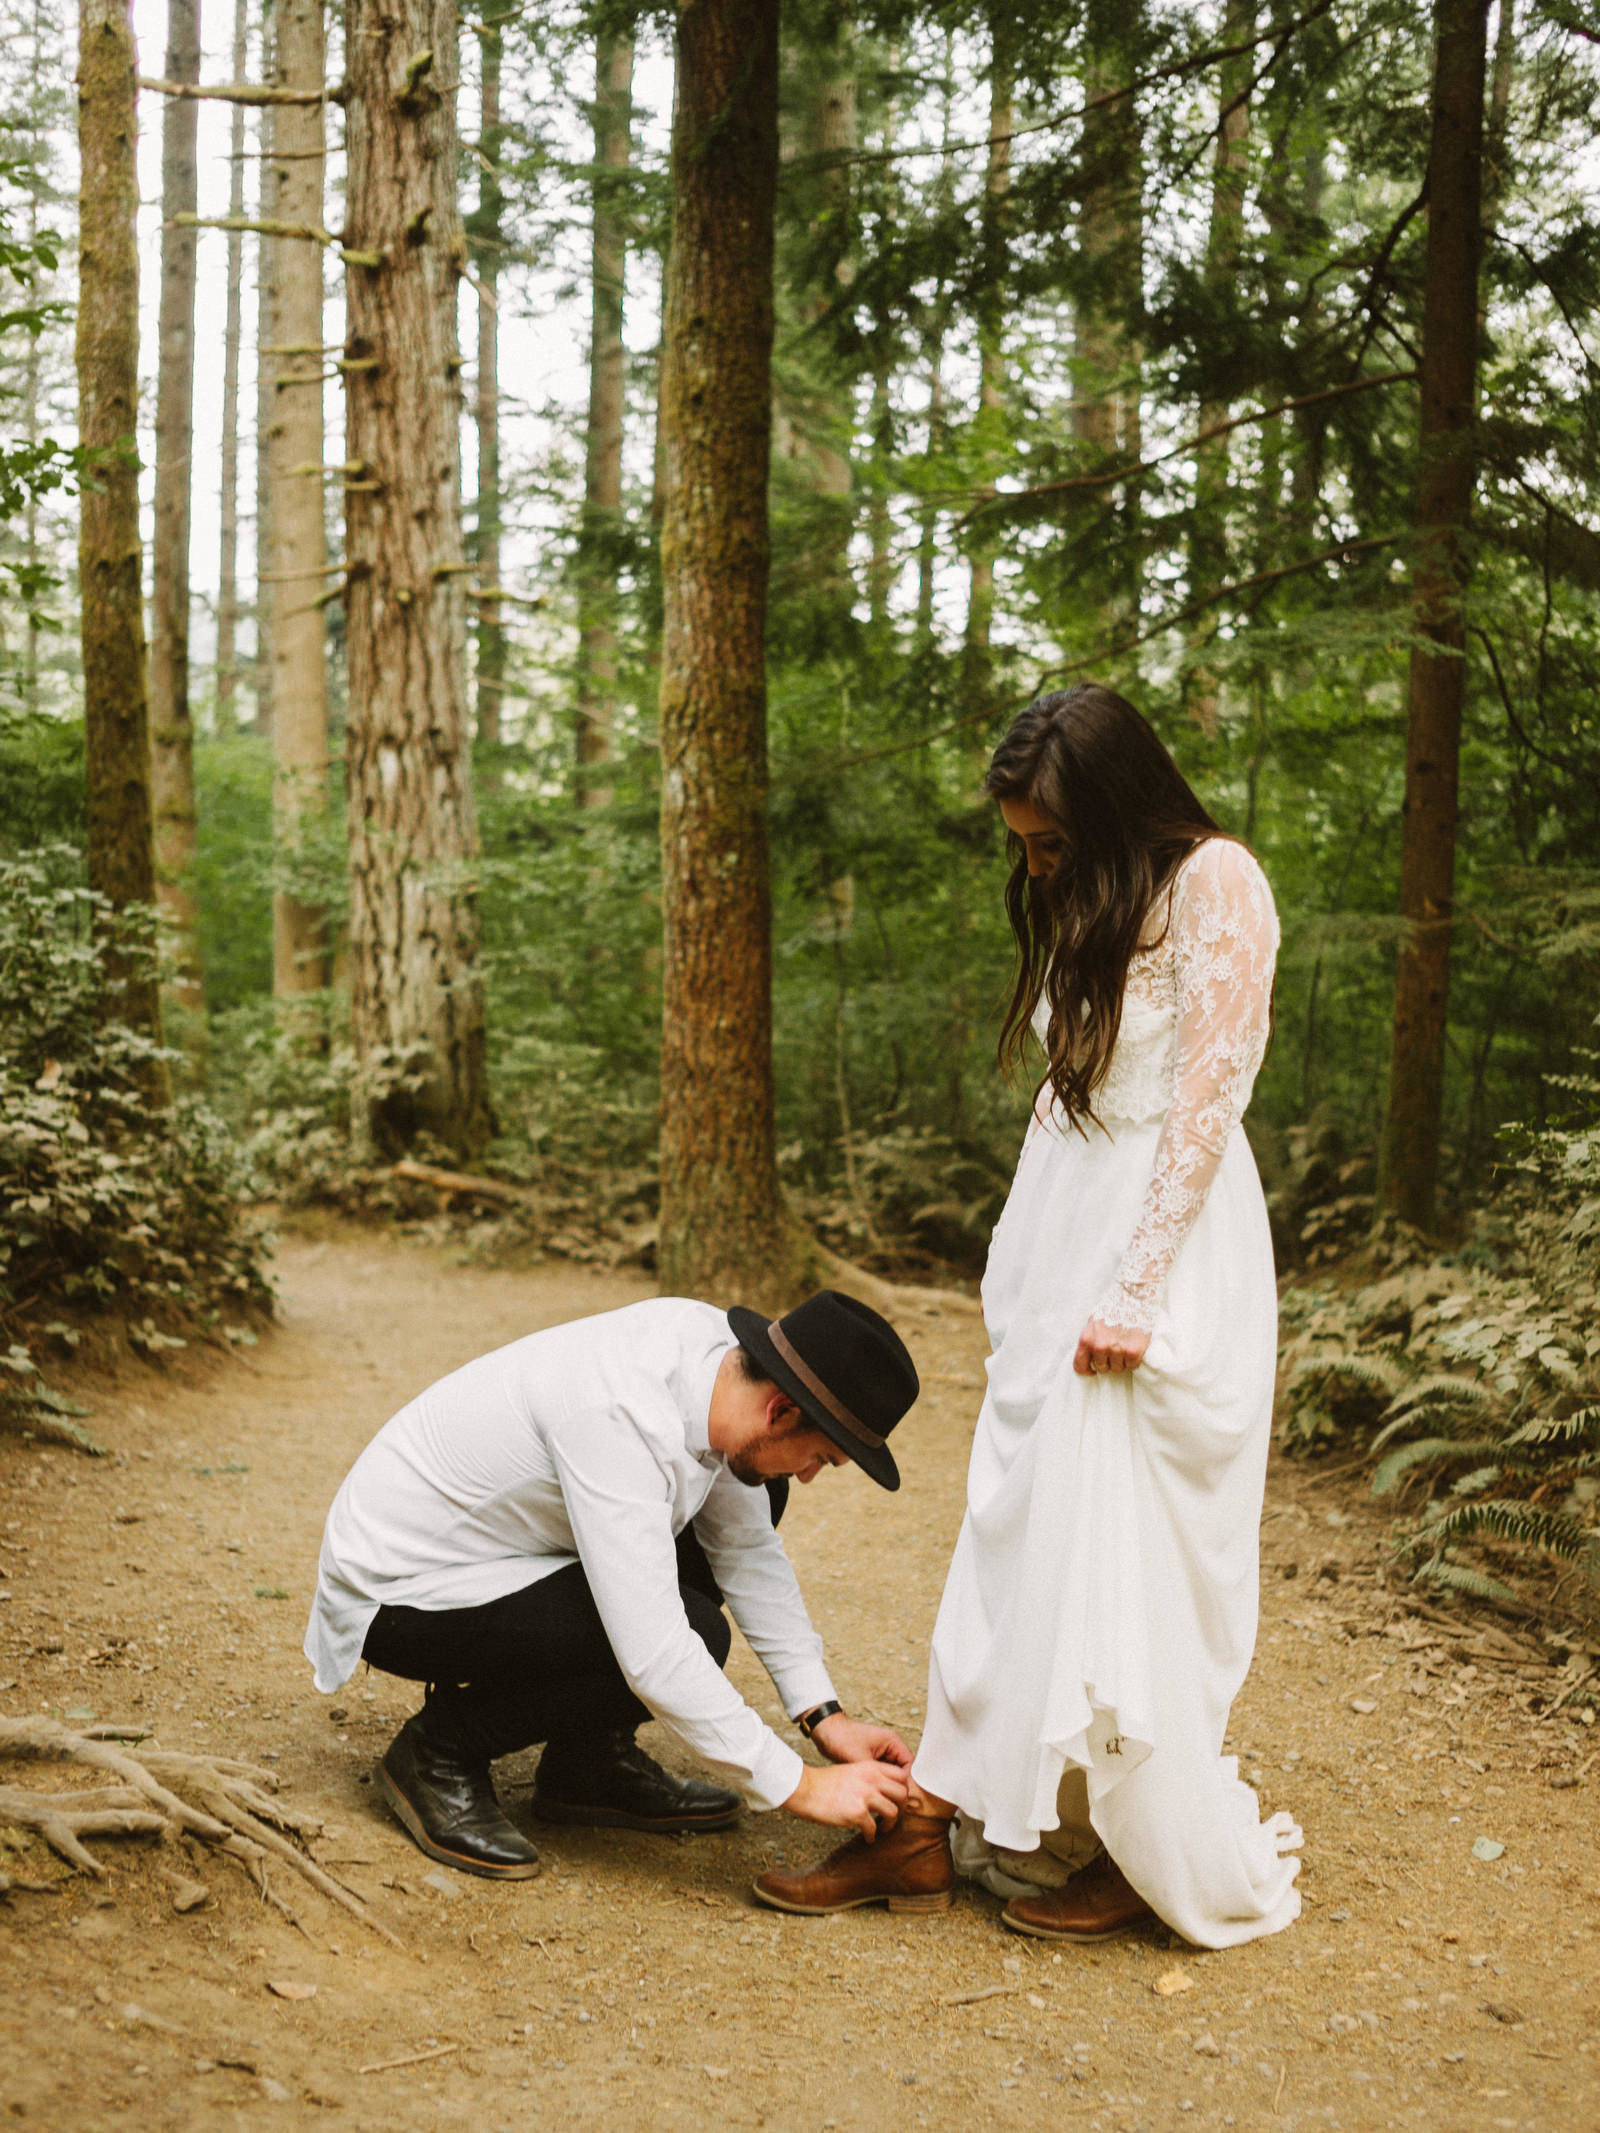 athena-and-camron-seattle-elopement-wedding-benj-haisch-rattlesnake-lake-christian-couple-goals29